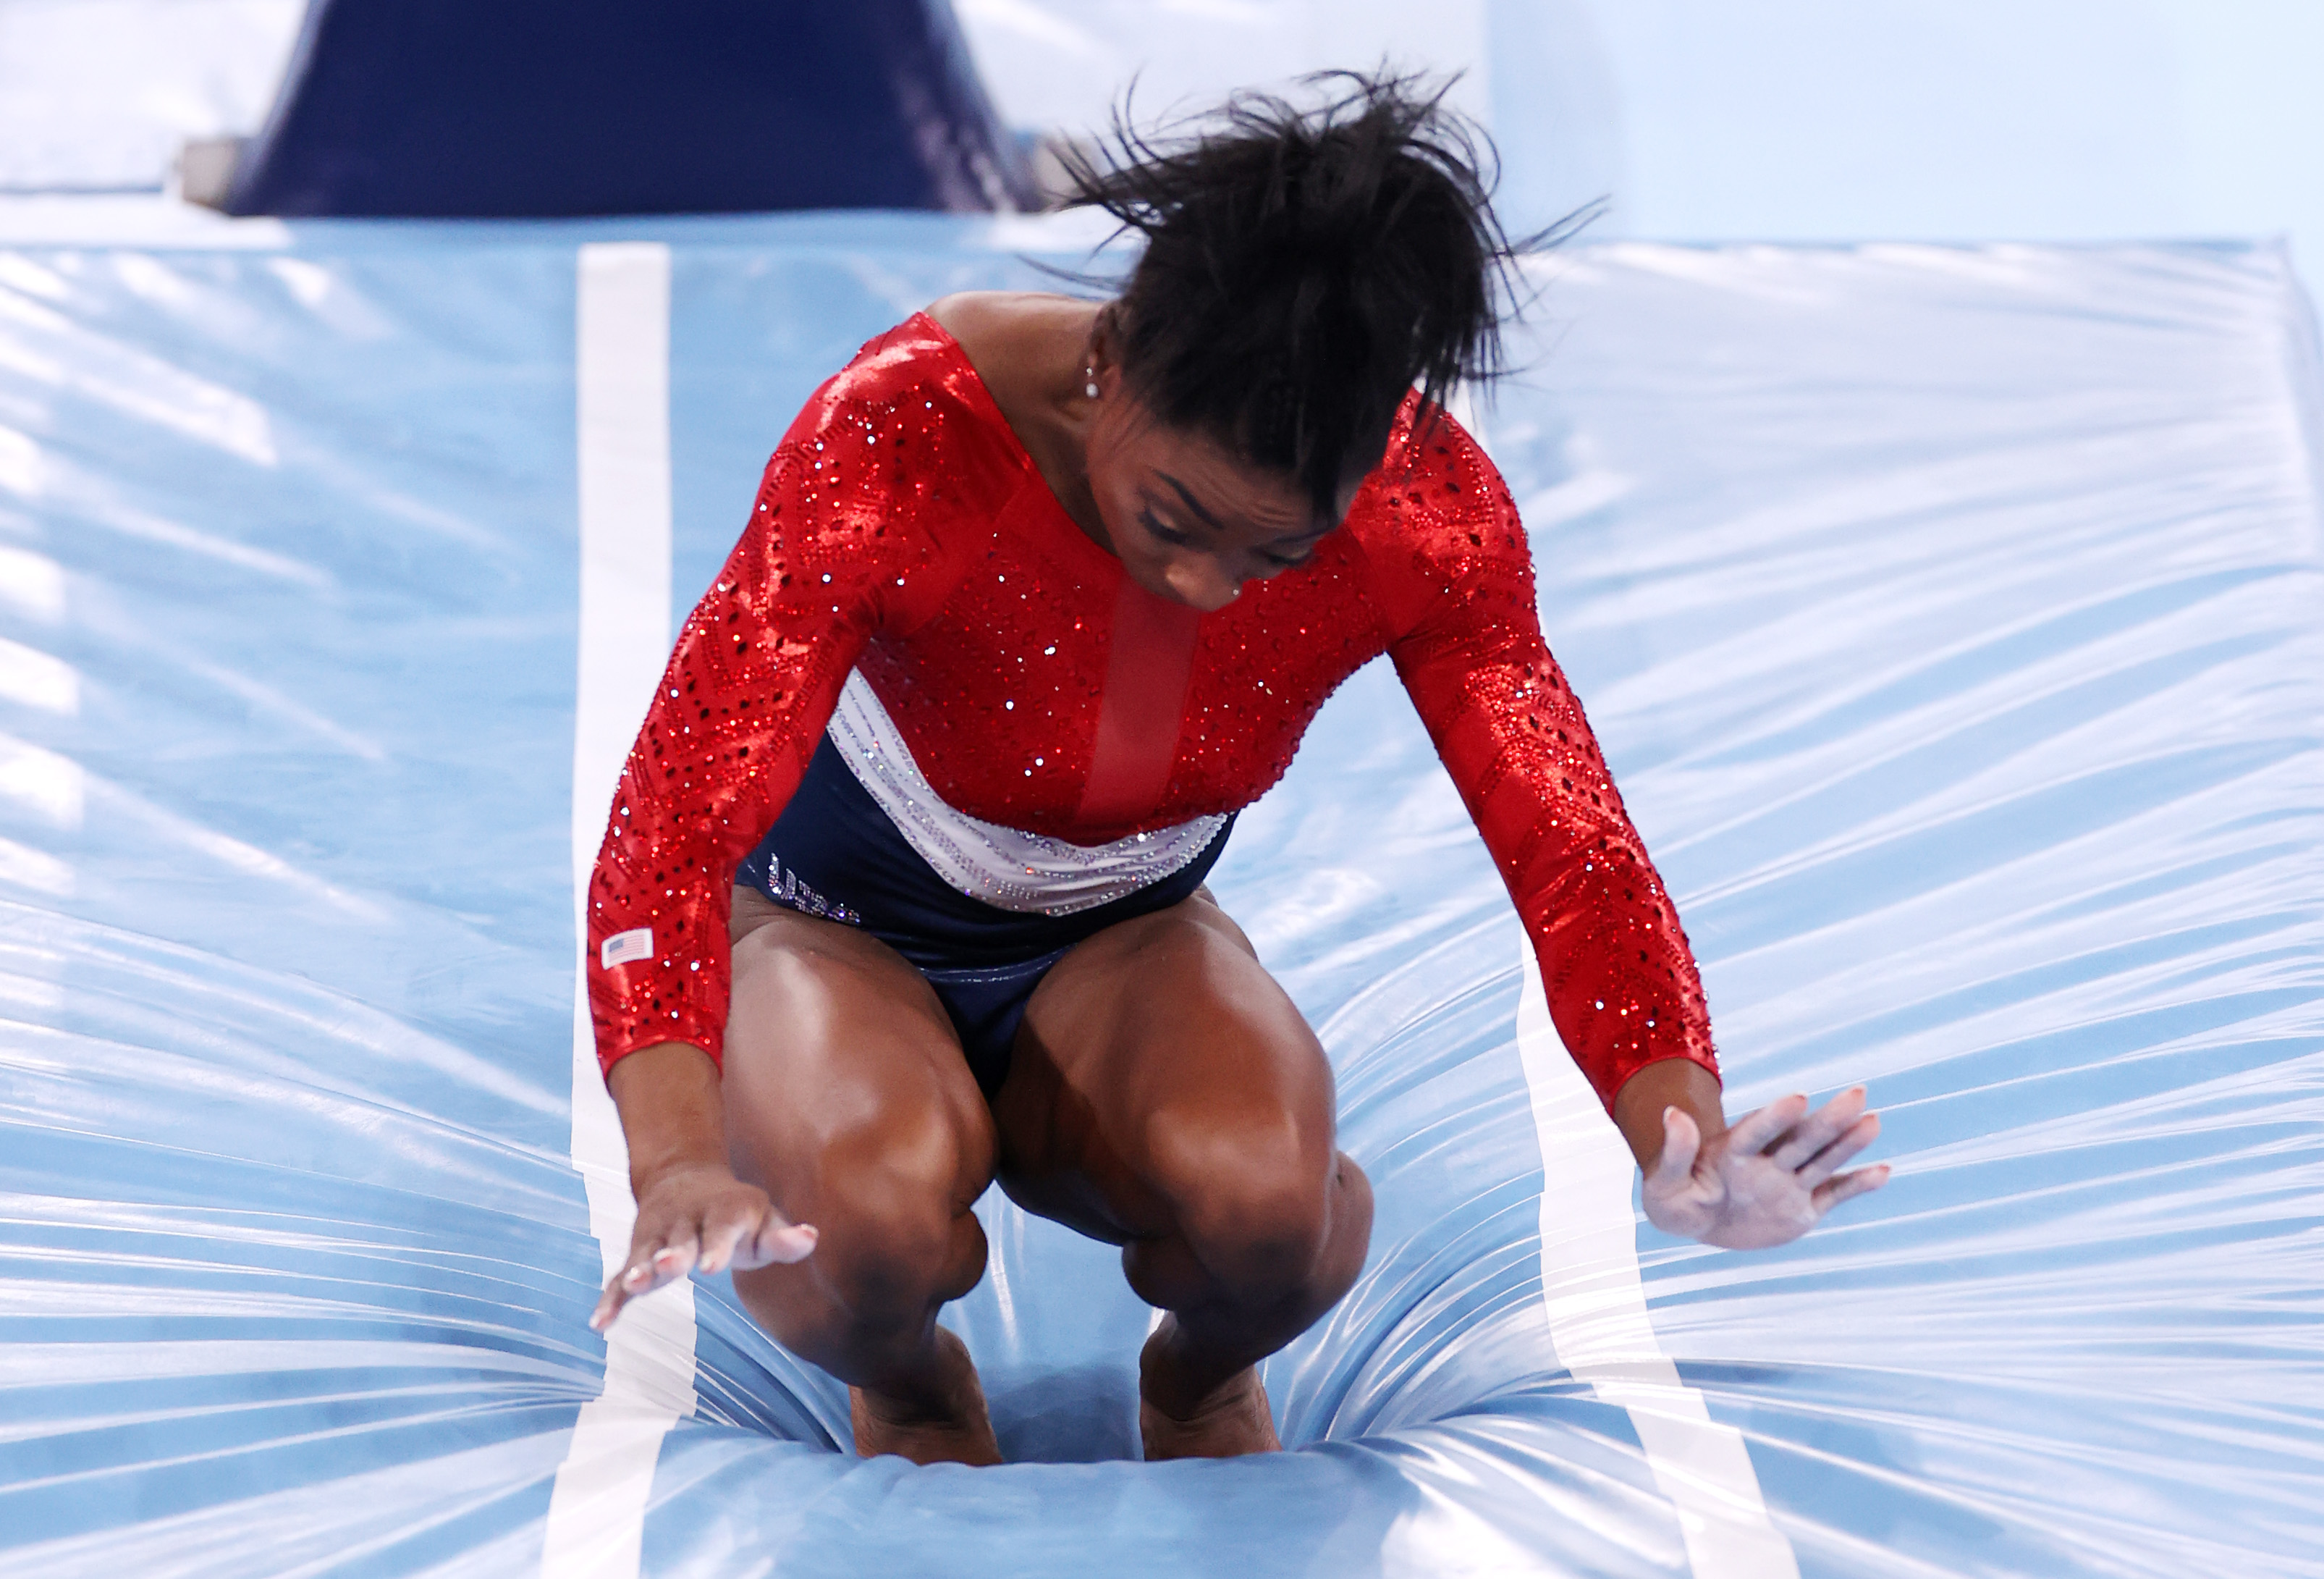 Simone Biles Out of Olympics Gymnastics Final With Apparent Injury